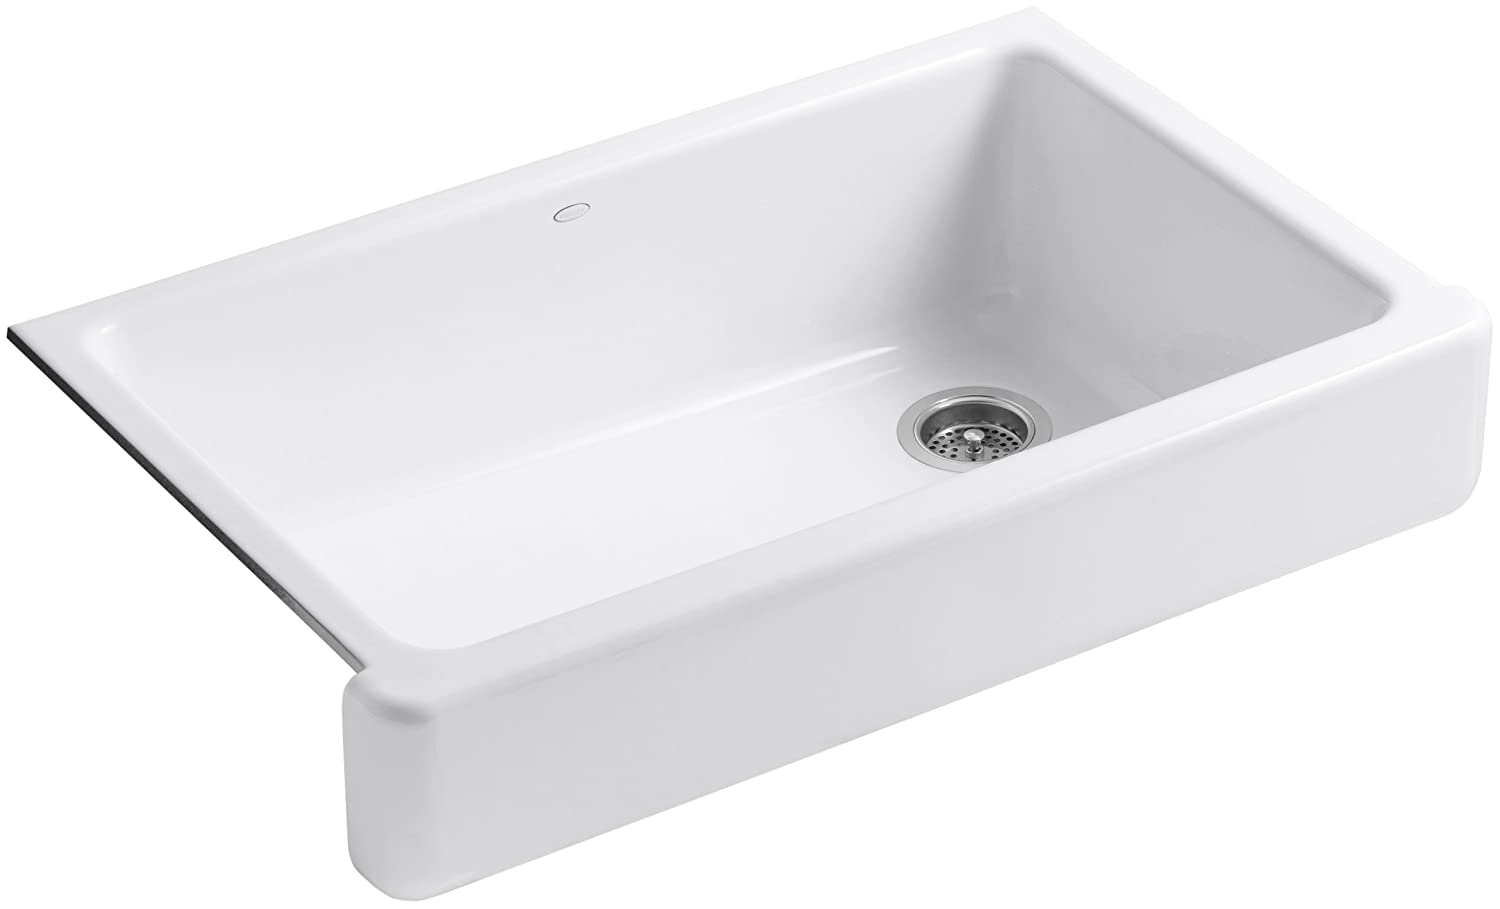 KOHLER K-6488-0 Whitehaven Self-Trimming Cast Iron Apron Front Single Basin Sink with Short Apron, White